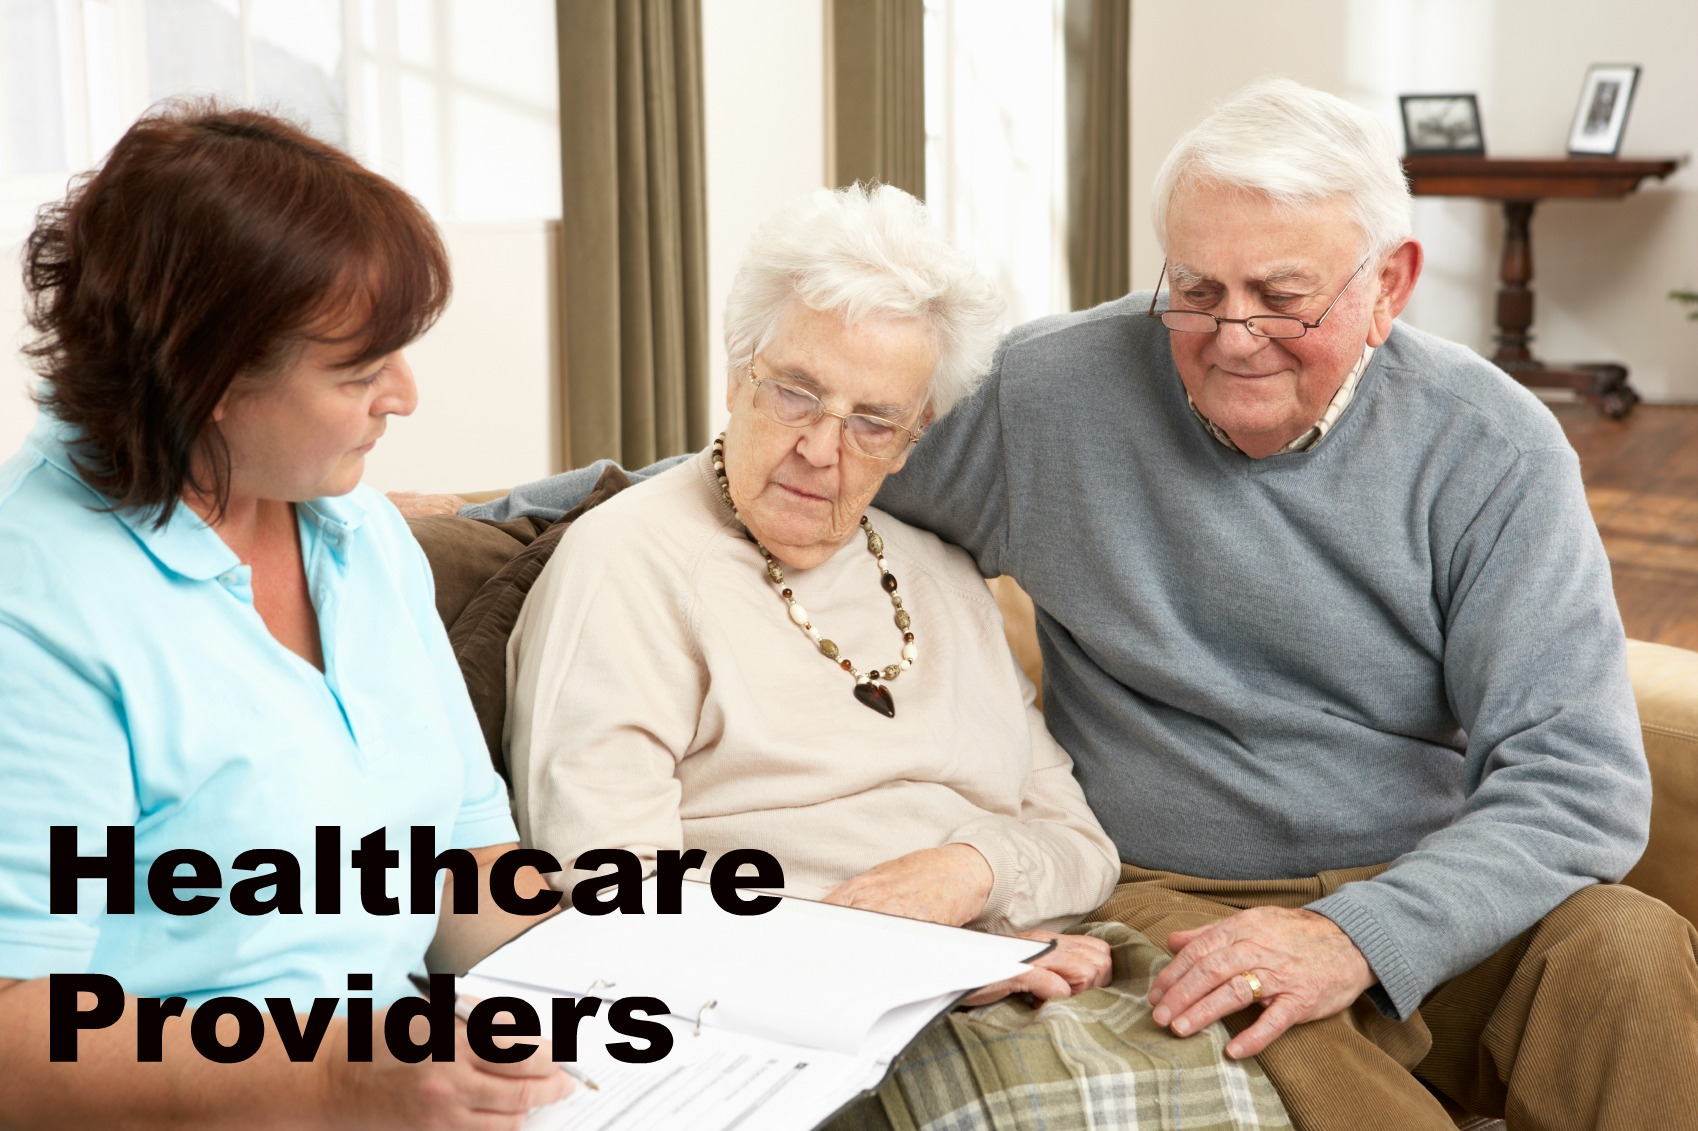 Healthcare_providers_2.jpg